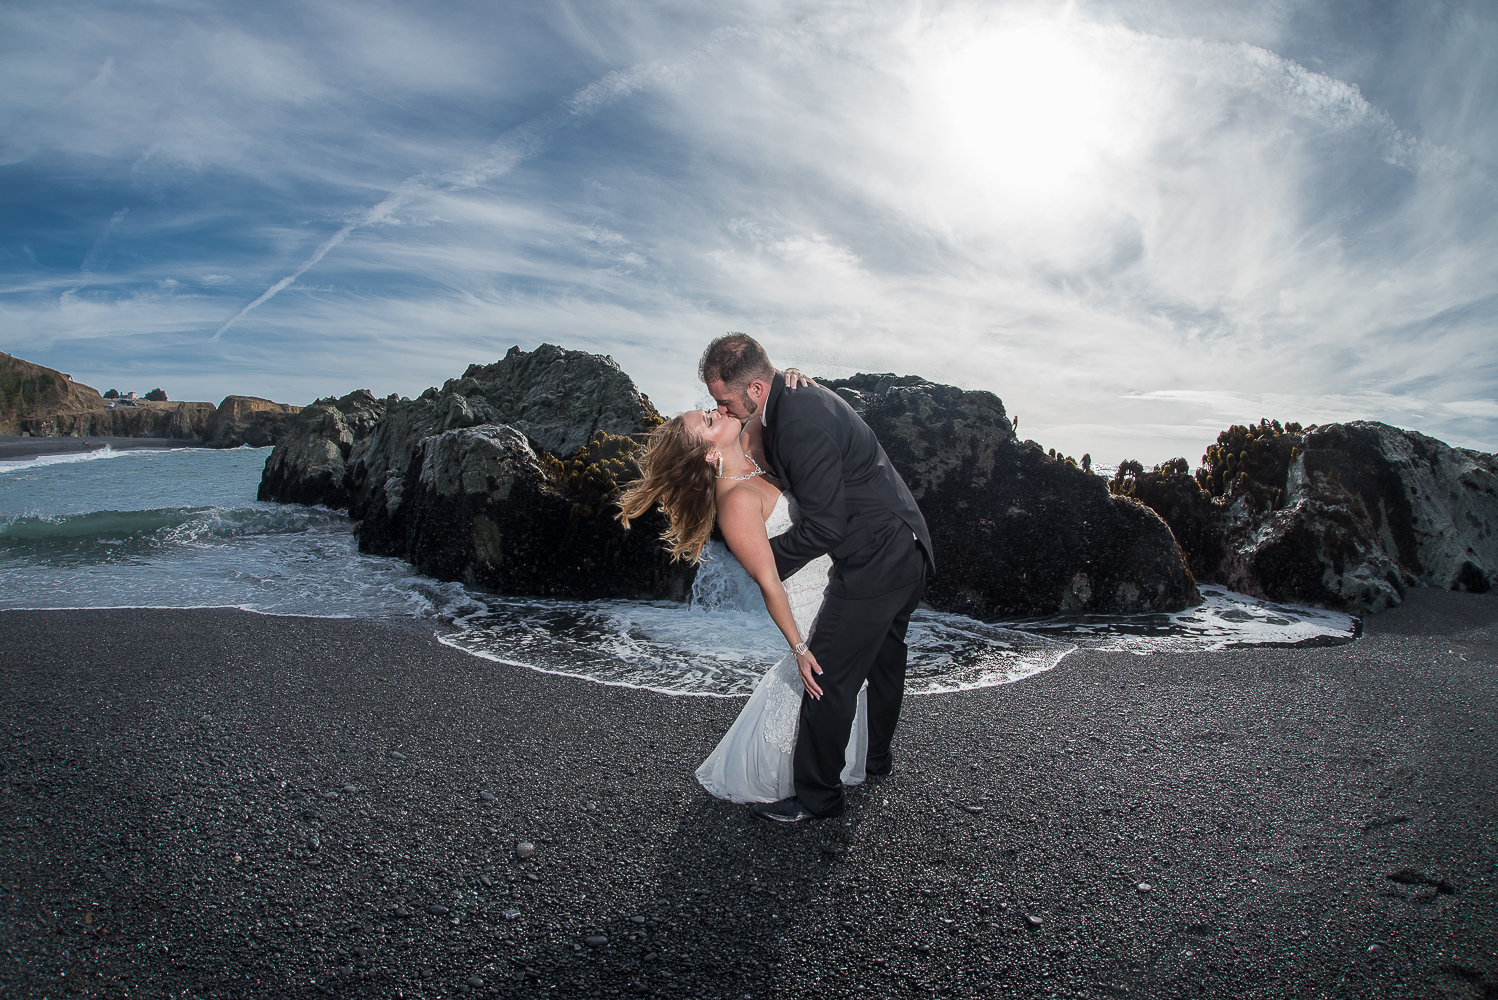 Shelter Cove-Intimate Destination beach Wedding-Parky's Pics Photography-Humboldt County_-26.jpg